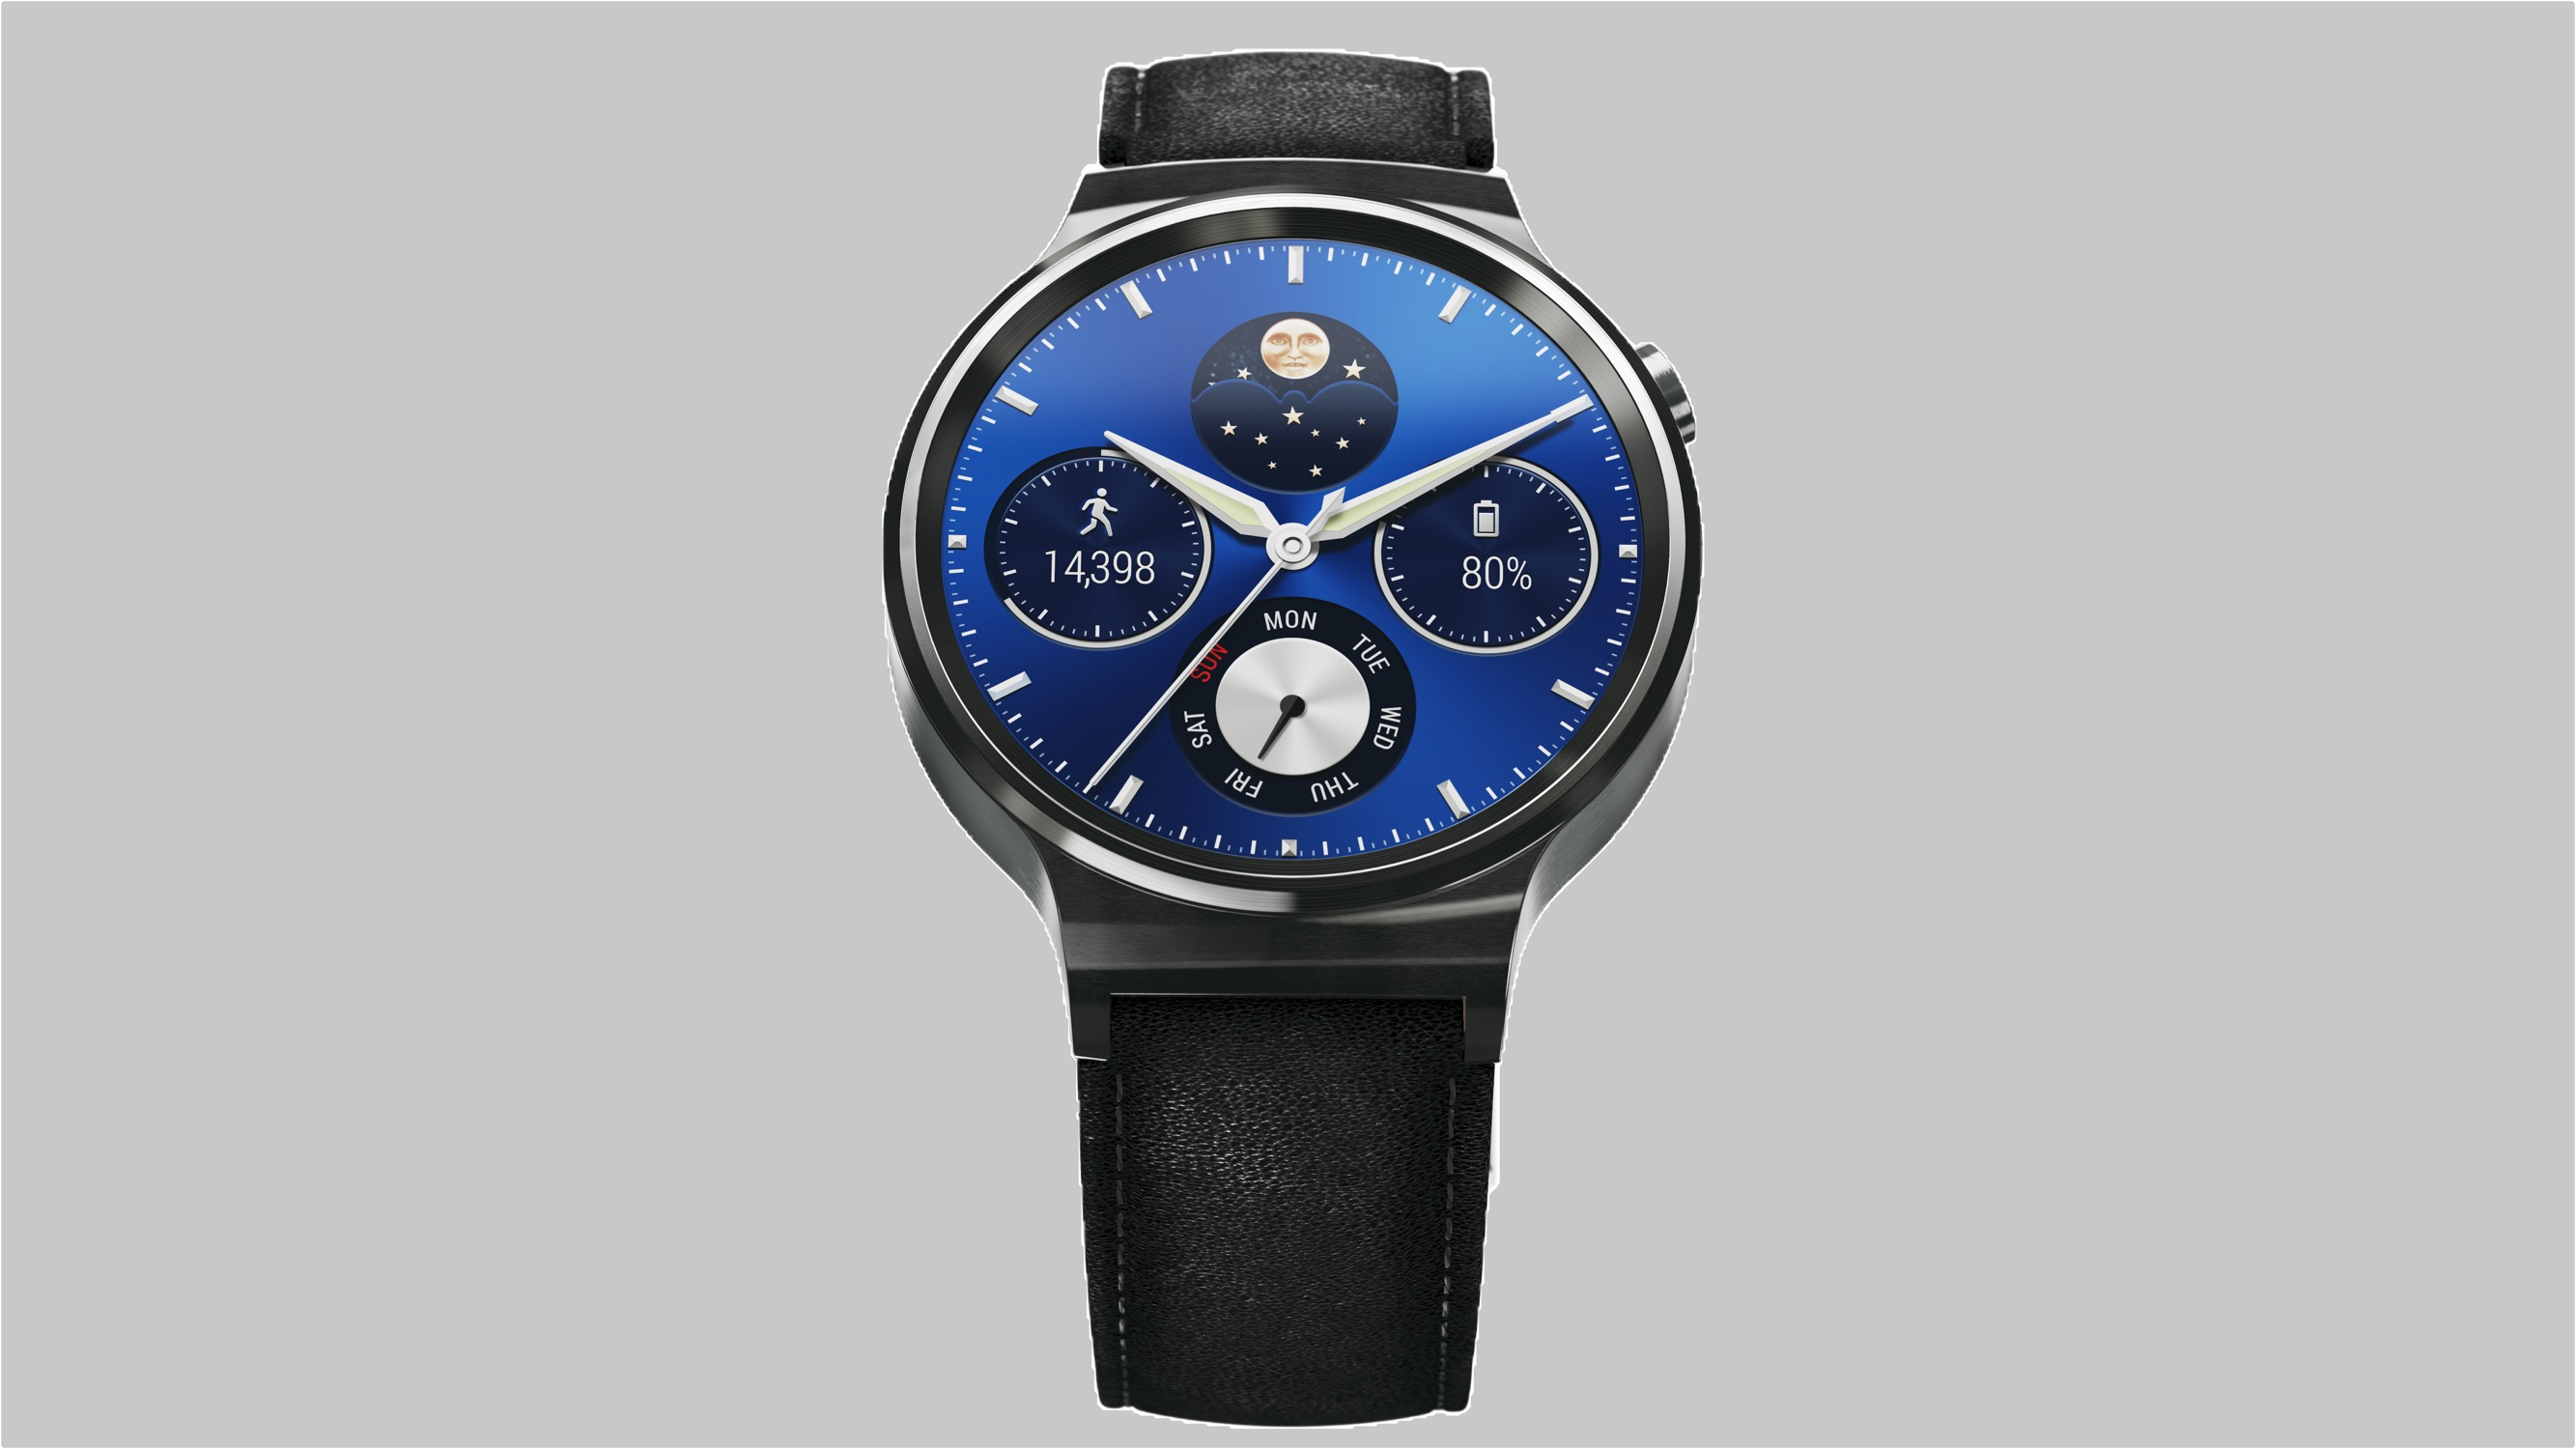 Huawei Watch on sale in the UK